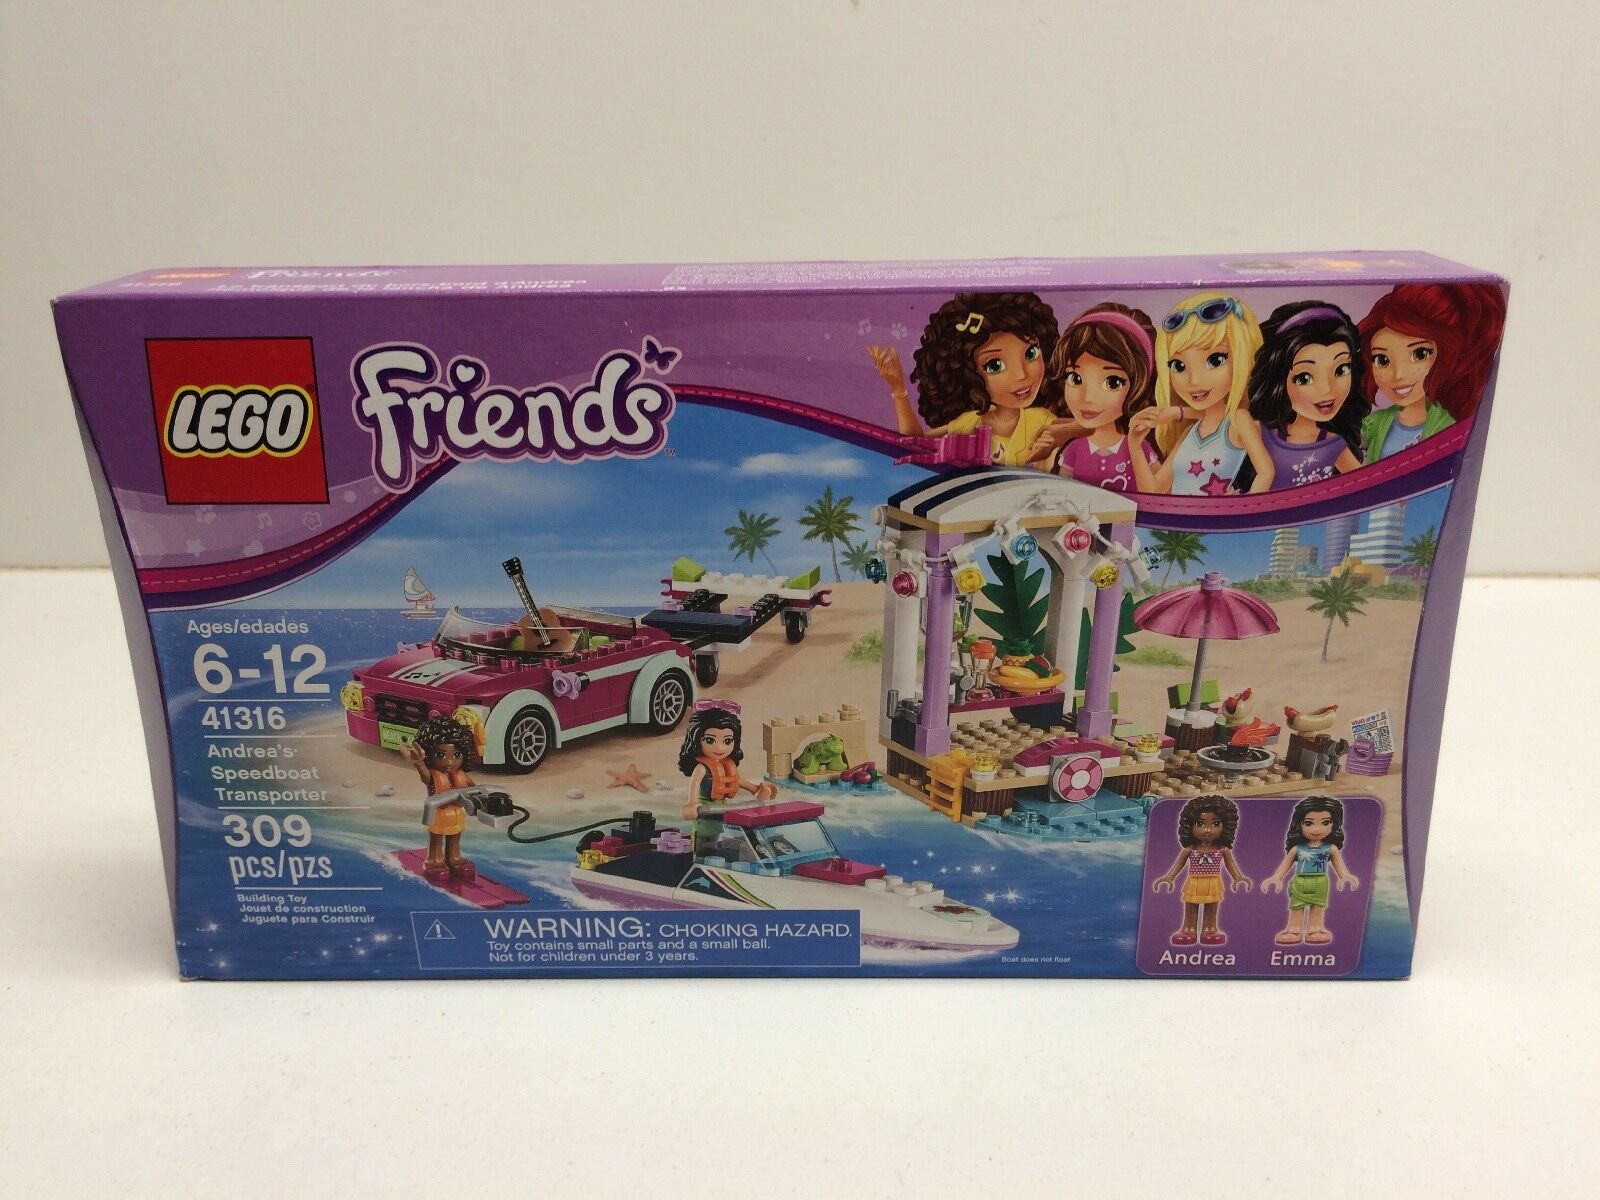 New Lego Friends 41316 Andreas Speedboat Transporter Factory Sealed NIB